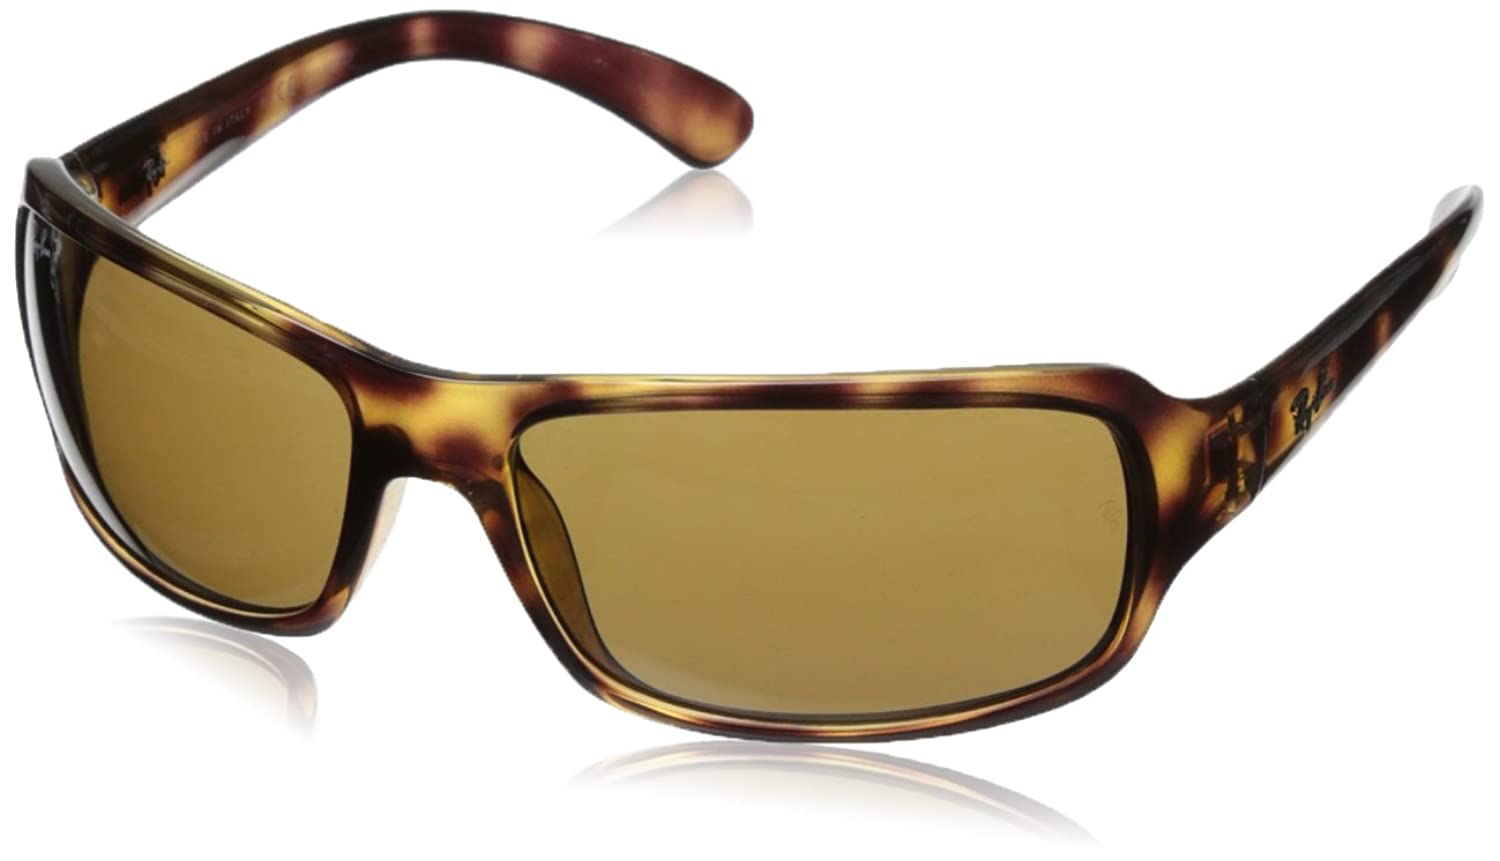 ray ban havana polarized sunglasses  amazon: ray ban rb4075 havana frame crystal brown polarized lenses 61mm polarized: ray ban: clothing